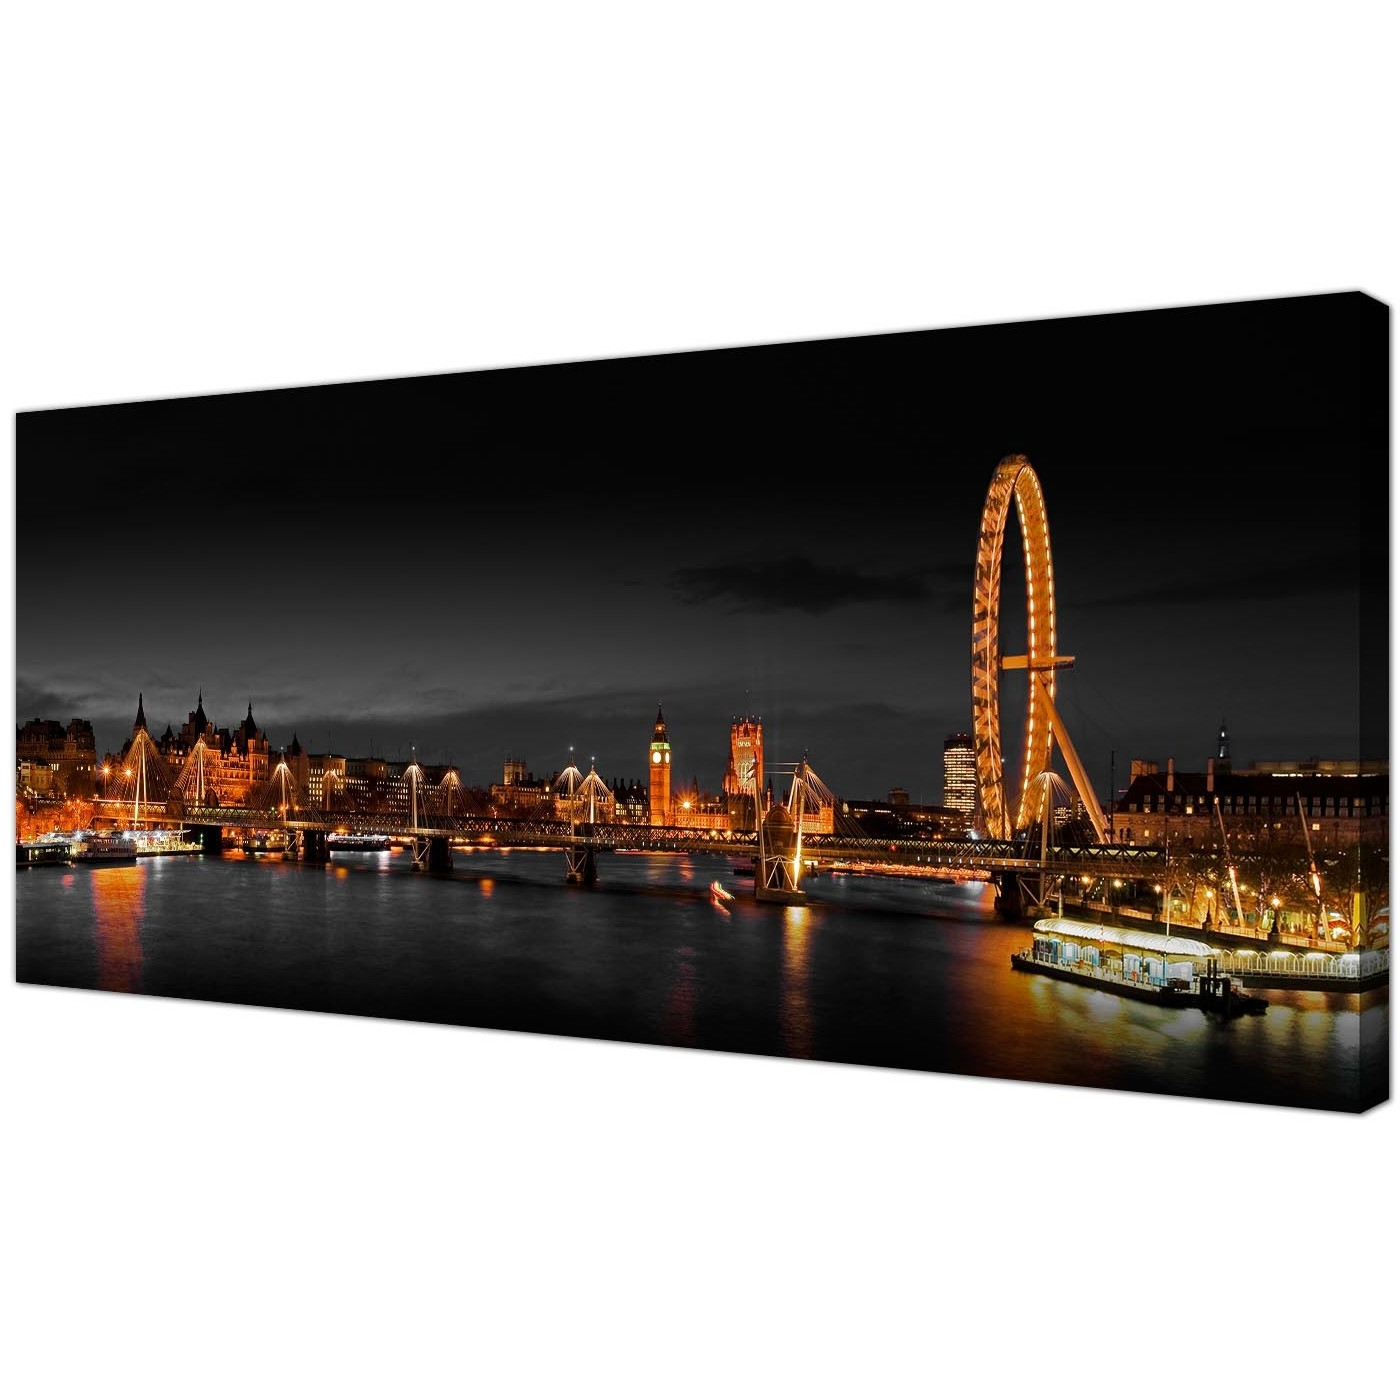 Canvas Wall Art Of London In Well Known Panoramic Canvas Wall Art Of London Eye At Night For Your Living Room (View 5 of 15)